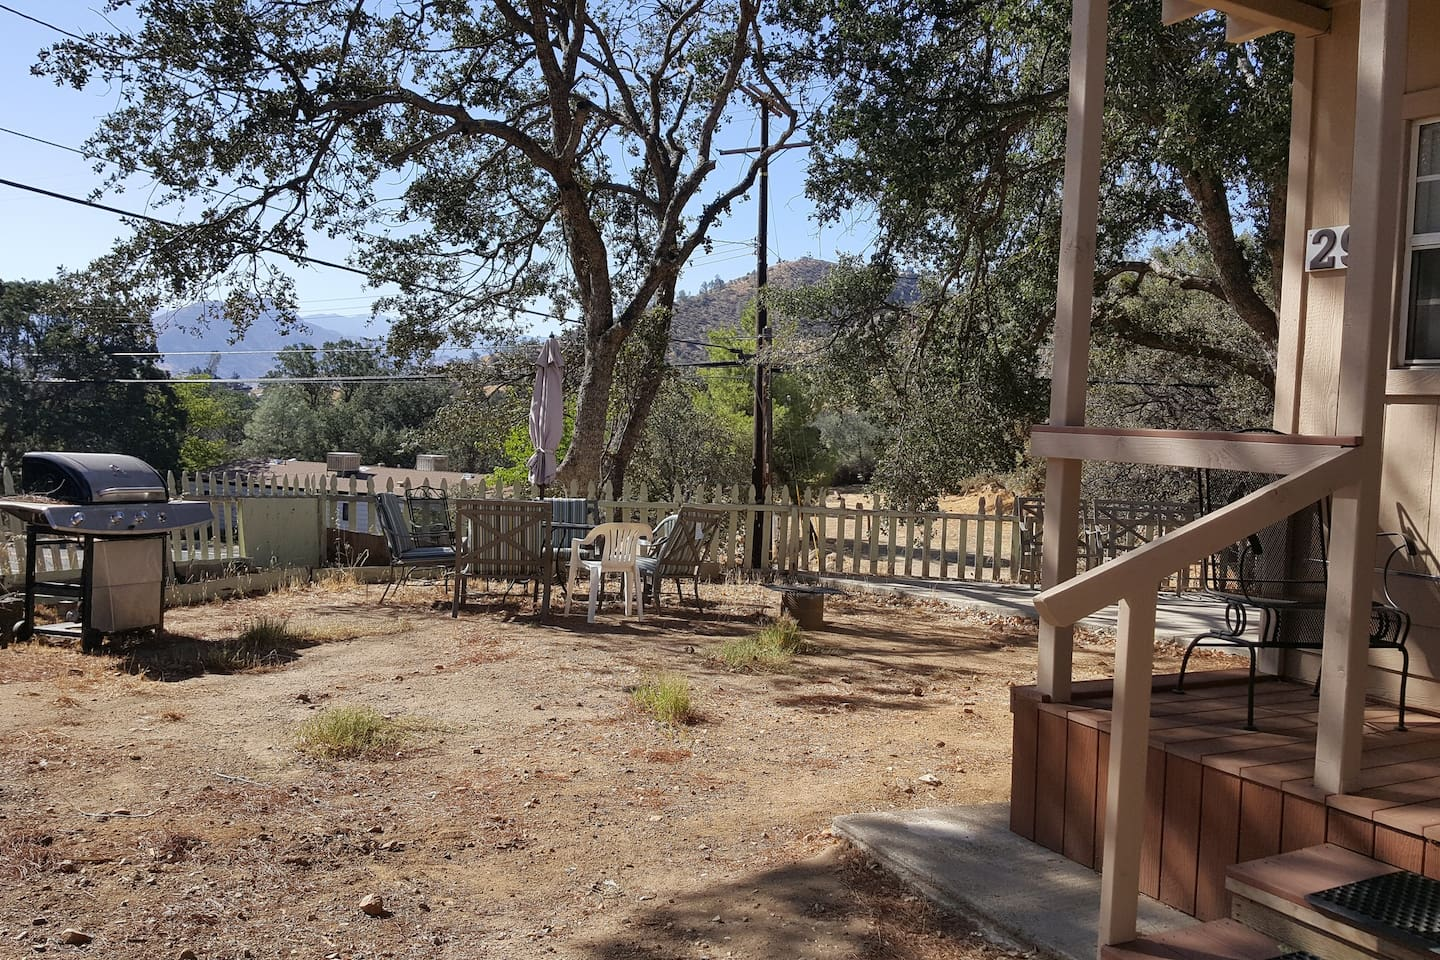 Front yard in in progress, but affords a peek at the lake and comfortable patio furniture, plus portable fire pit.